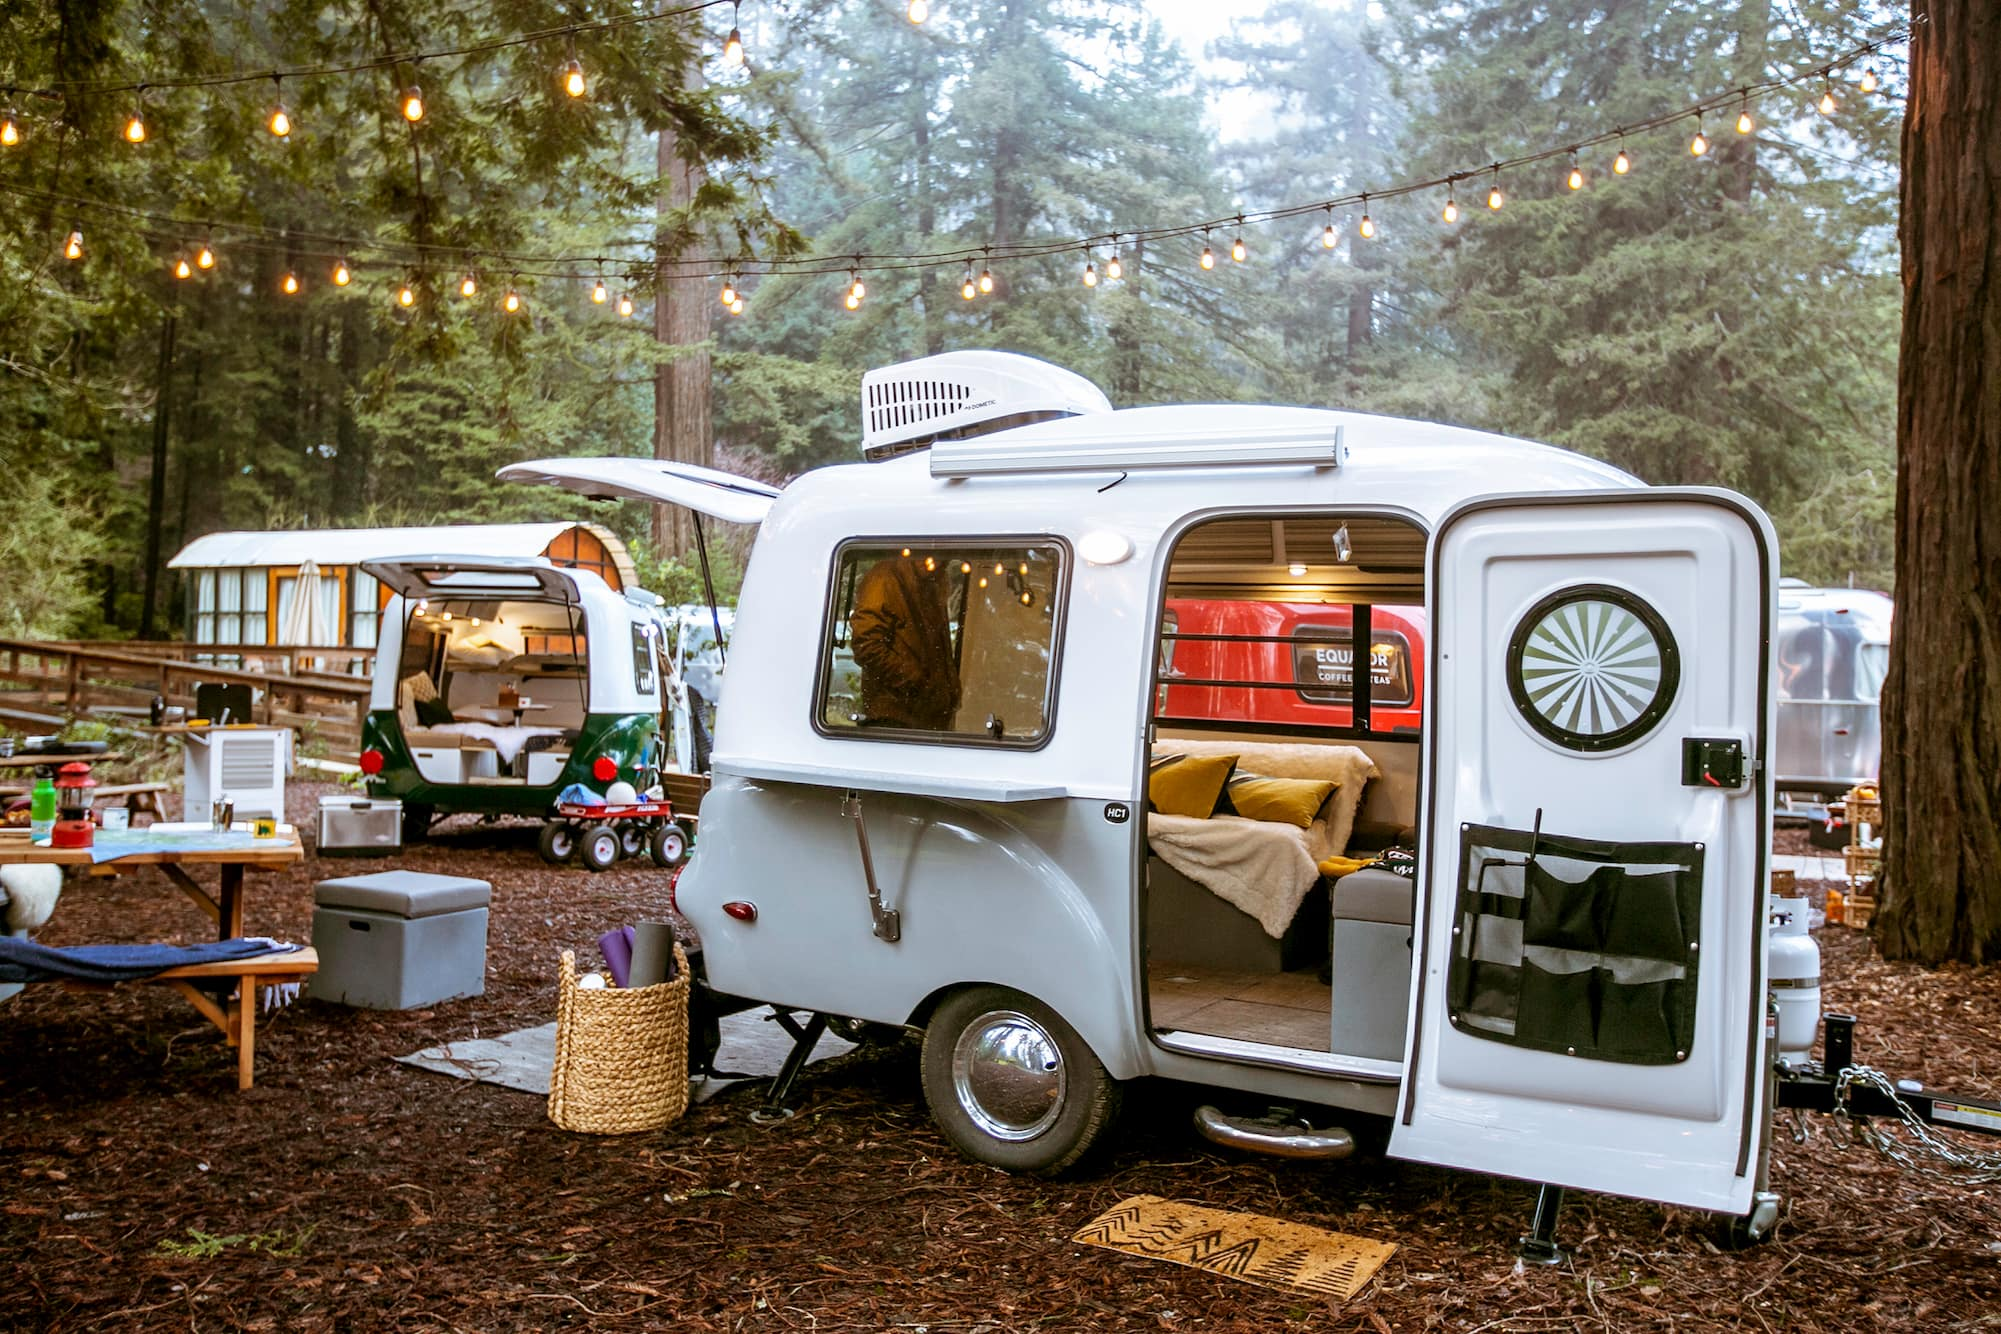 Bring Back Retro Camping With These 8 Vintage Campers